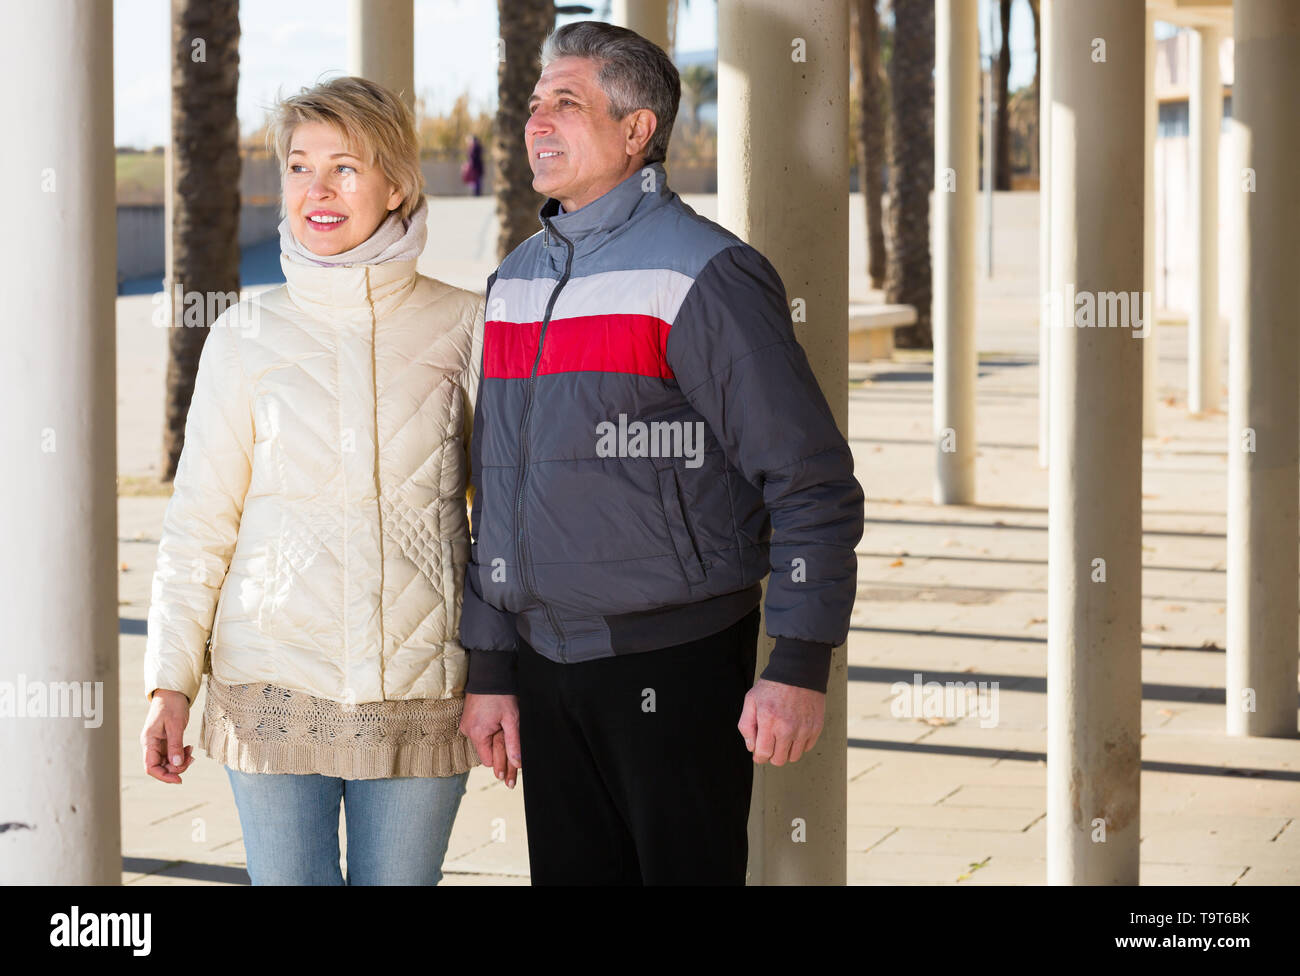 Smiling husband and wife are walking together clear sunny day between columns - Stock Image